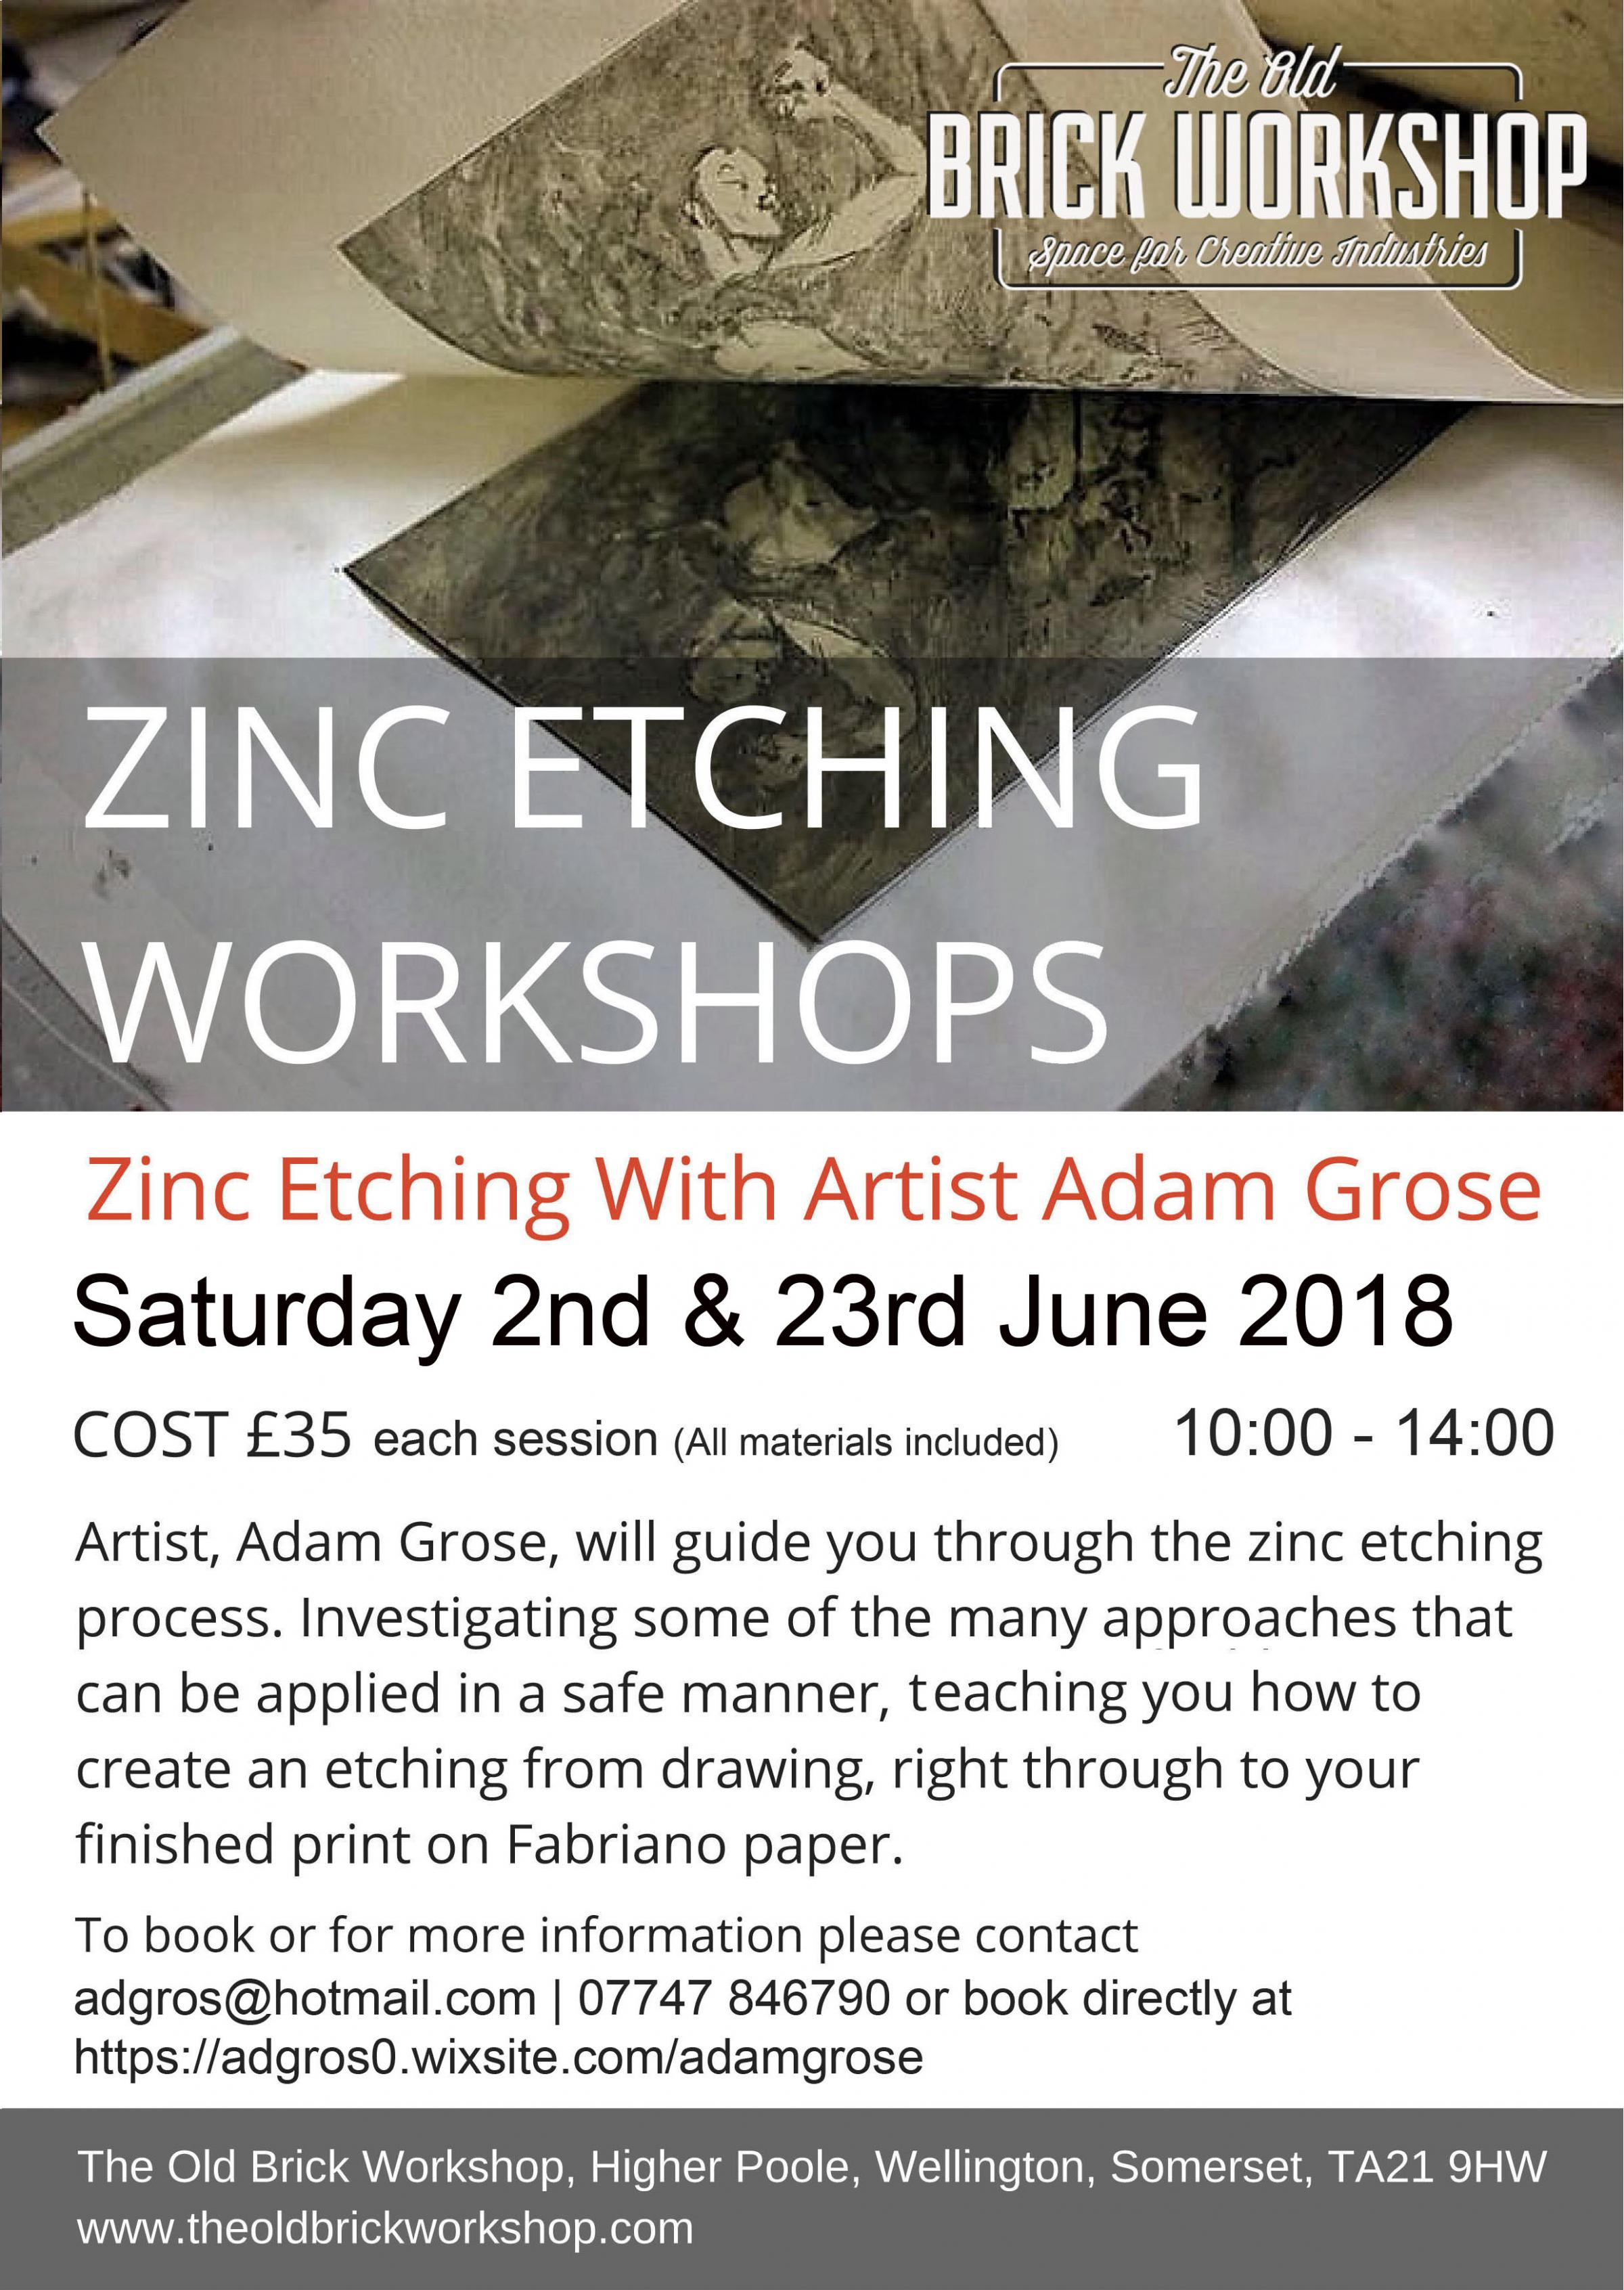 ZInc Etching Workshops